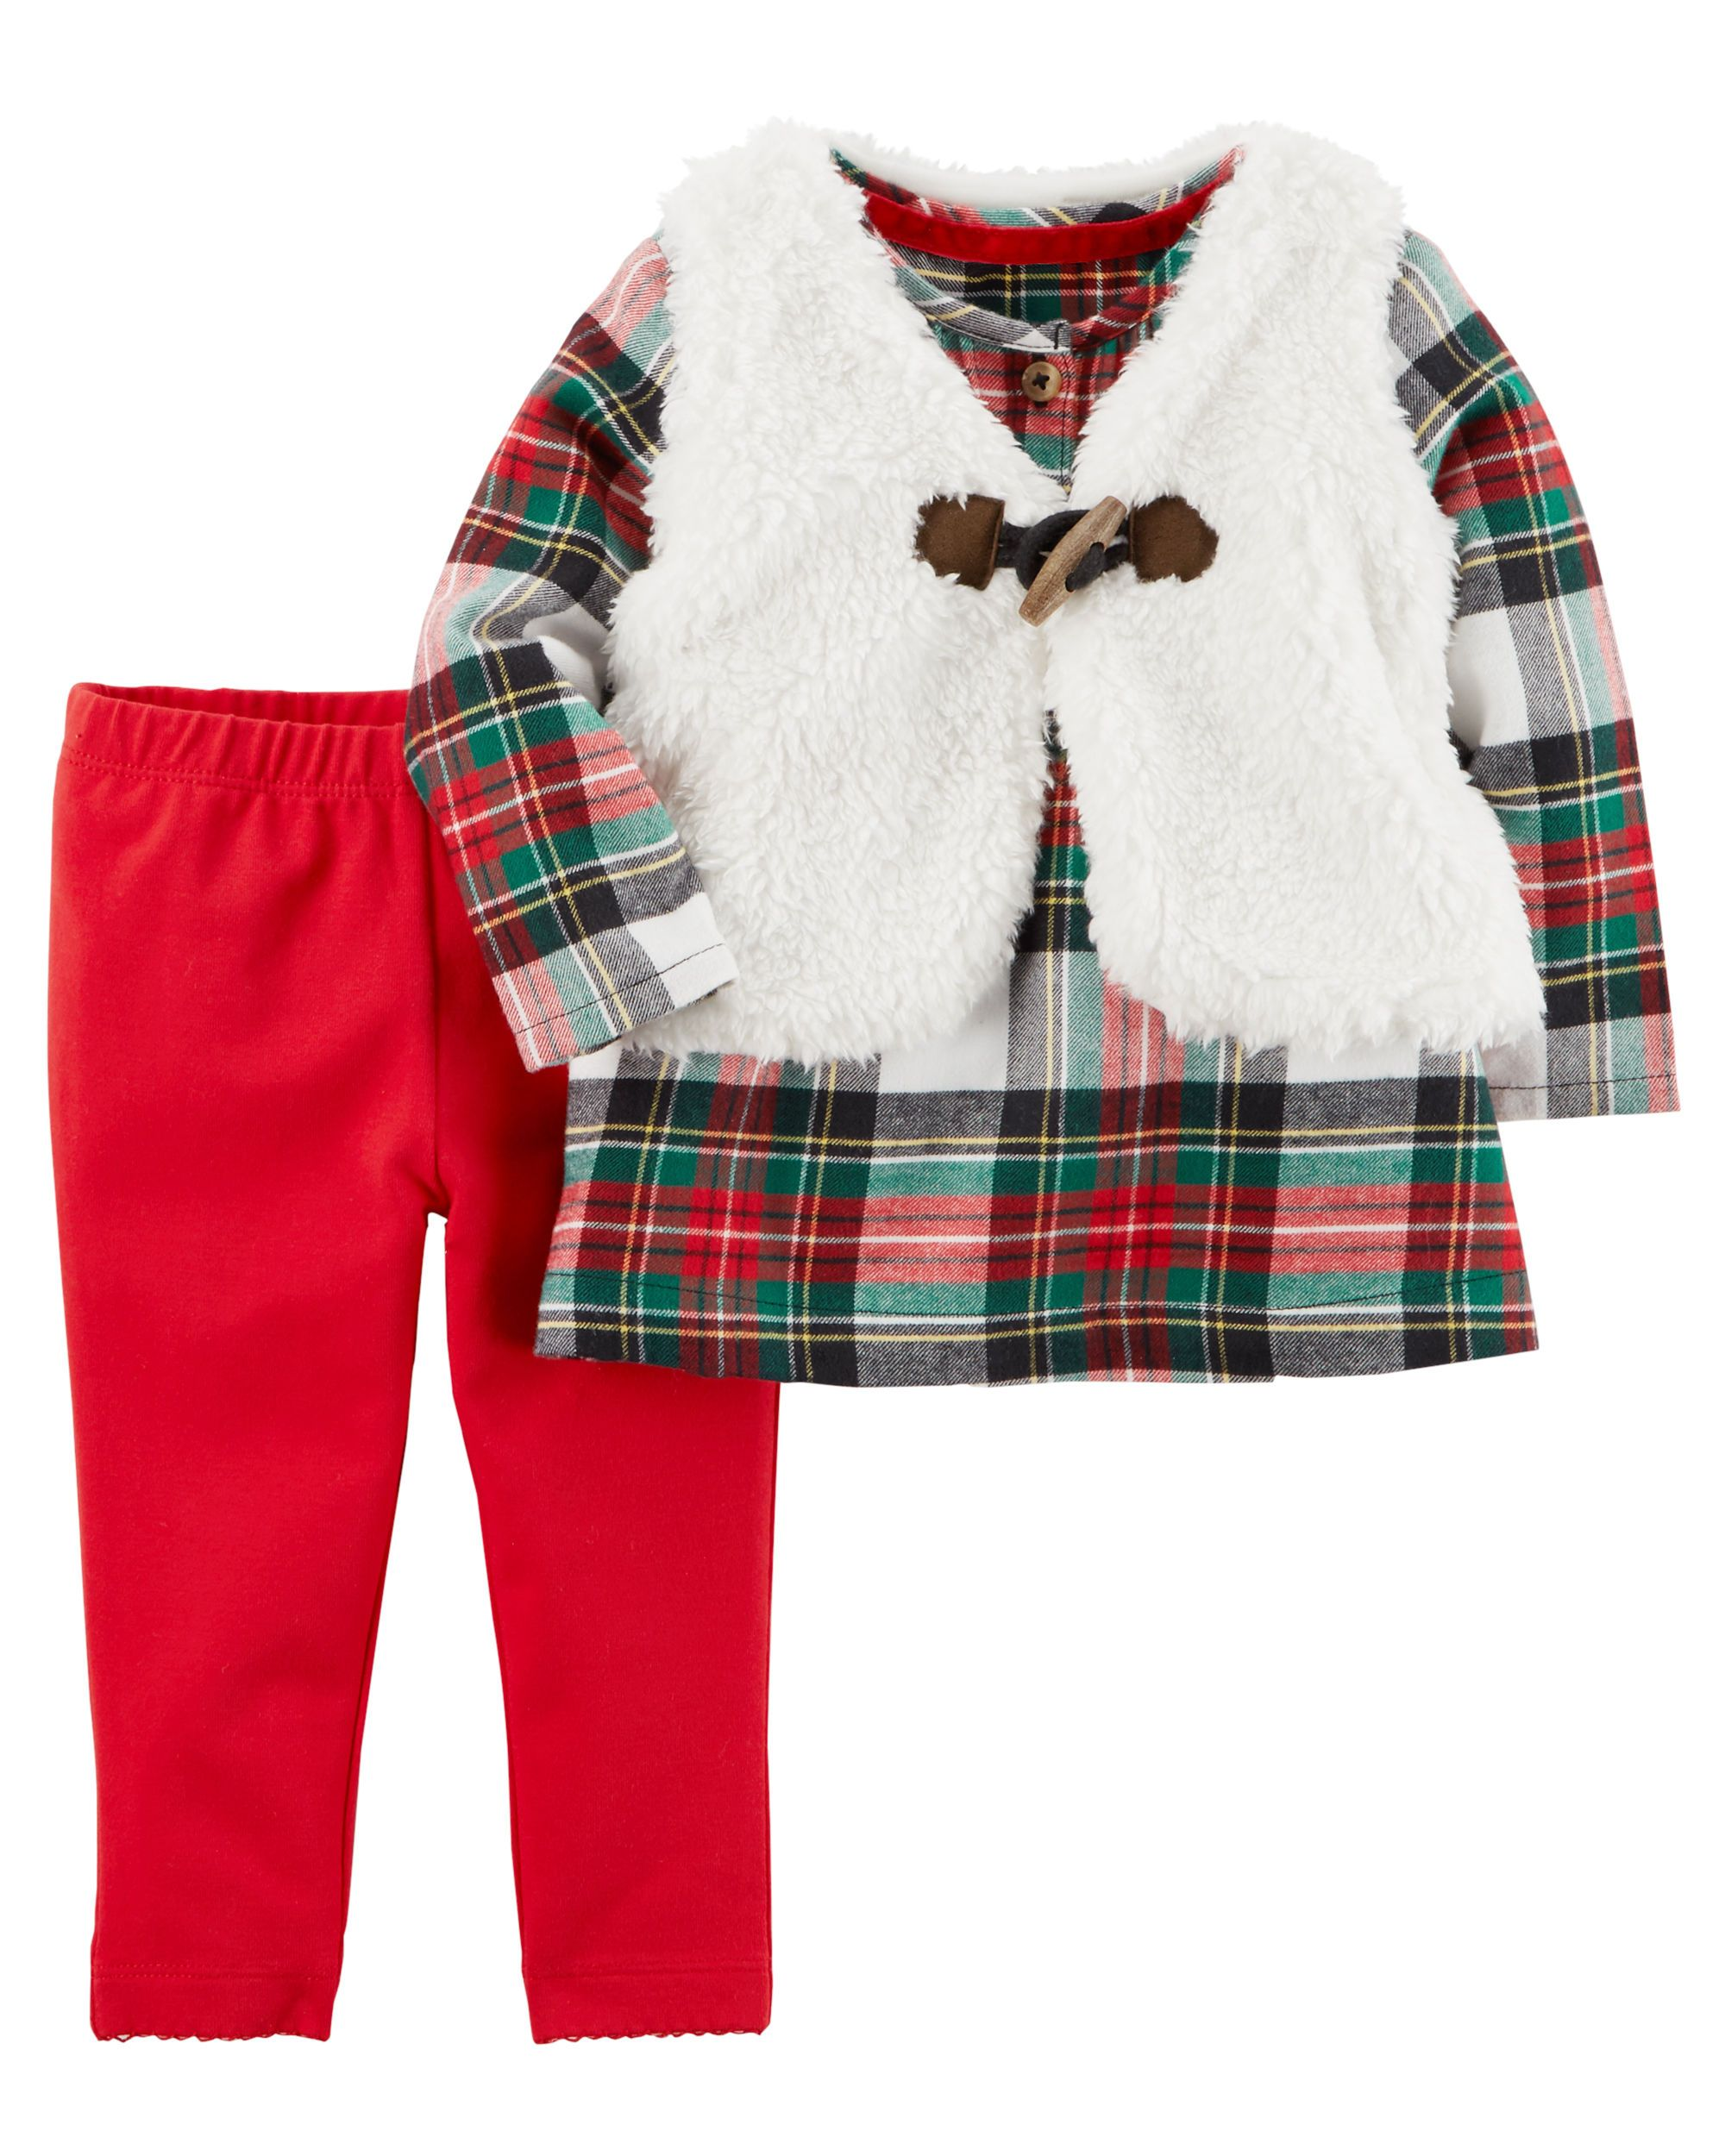 d2a9146d9 3-Piece Little Vest Set